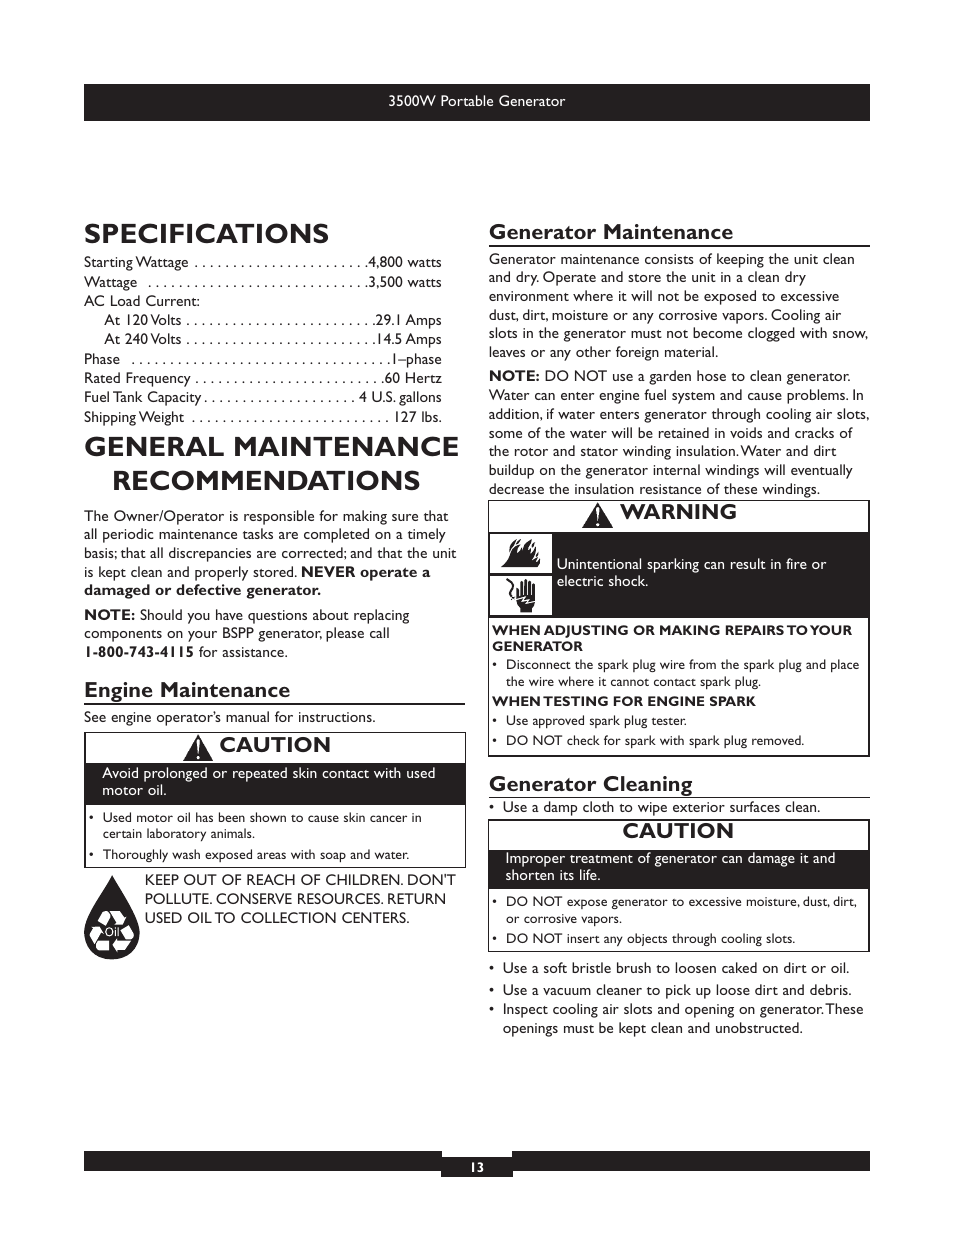 Specifications, General maintenance recommendations, Engine